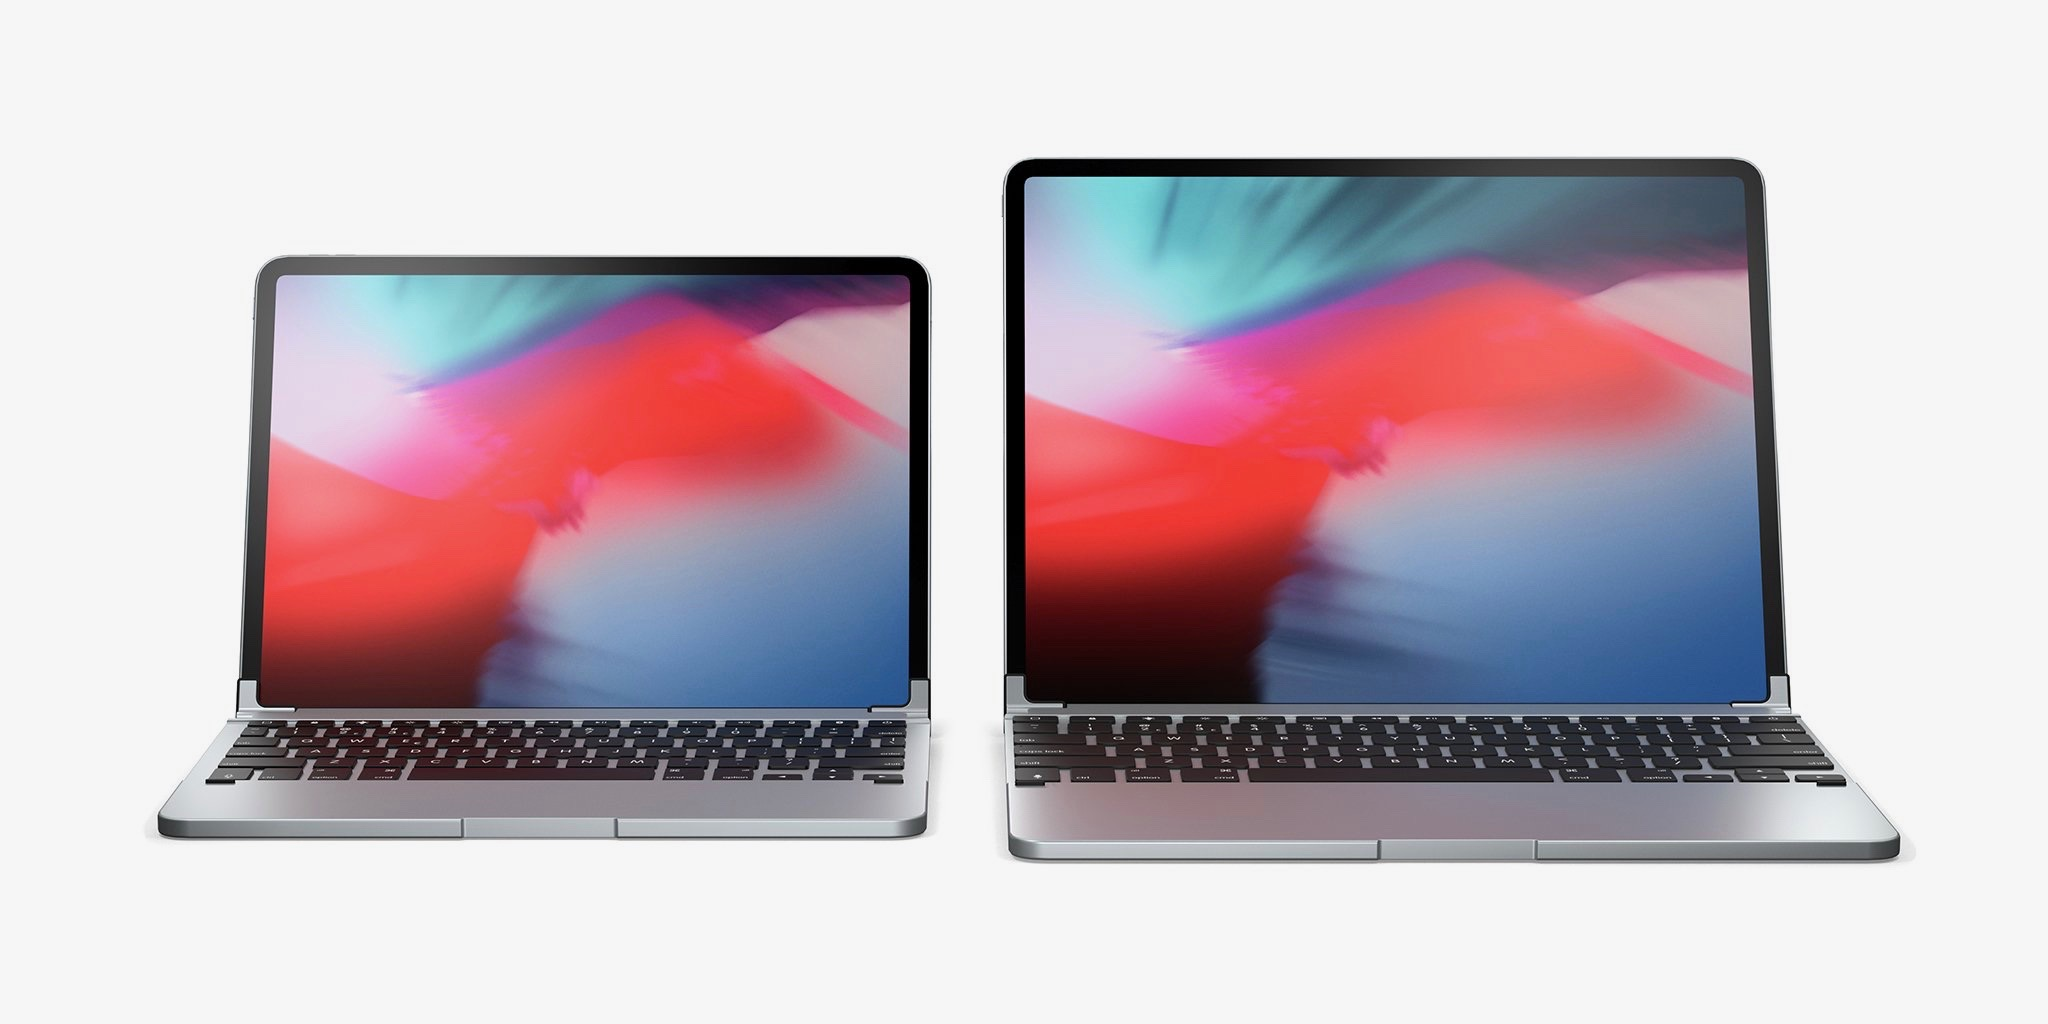 Brydge teases new keyboards for the 2018 iPad Pros, coming early next year